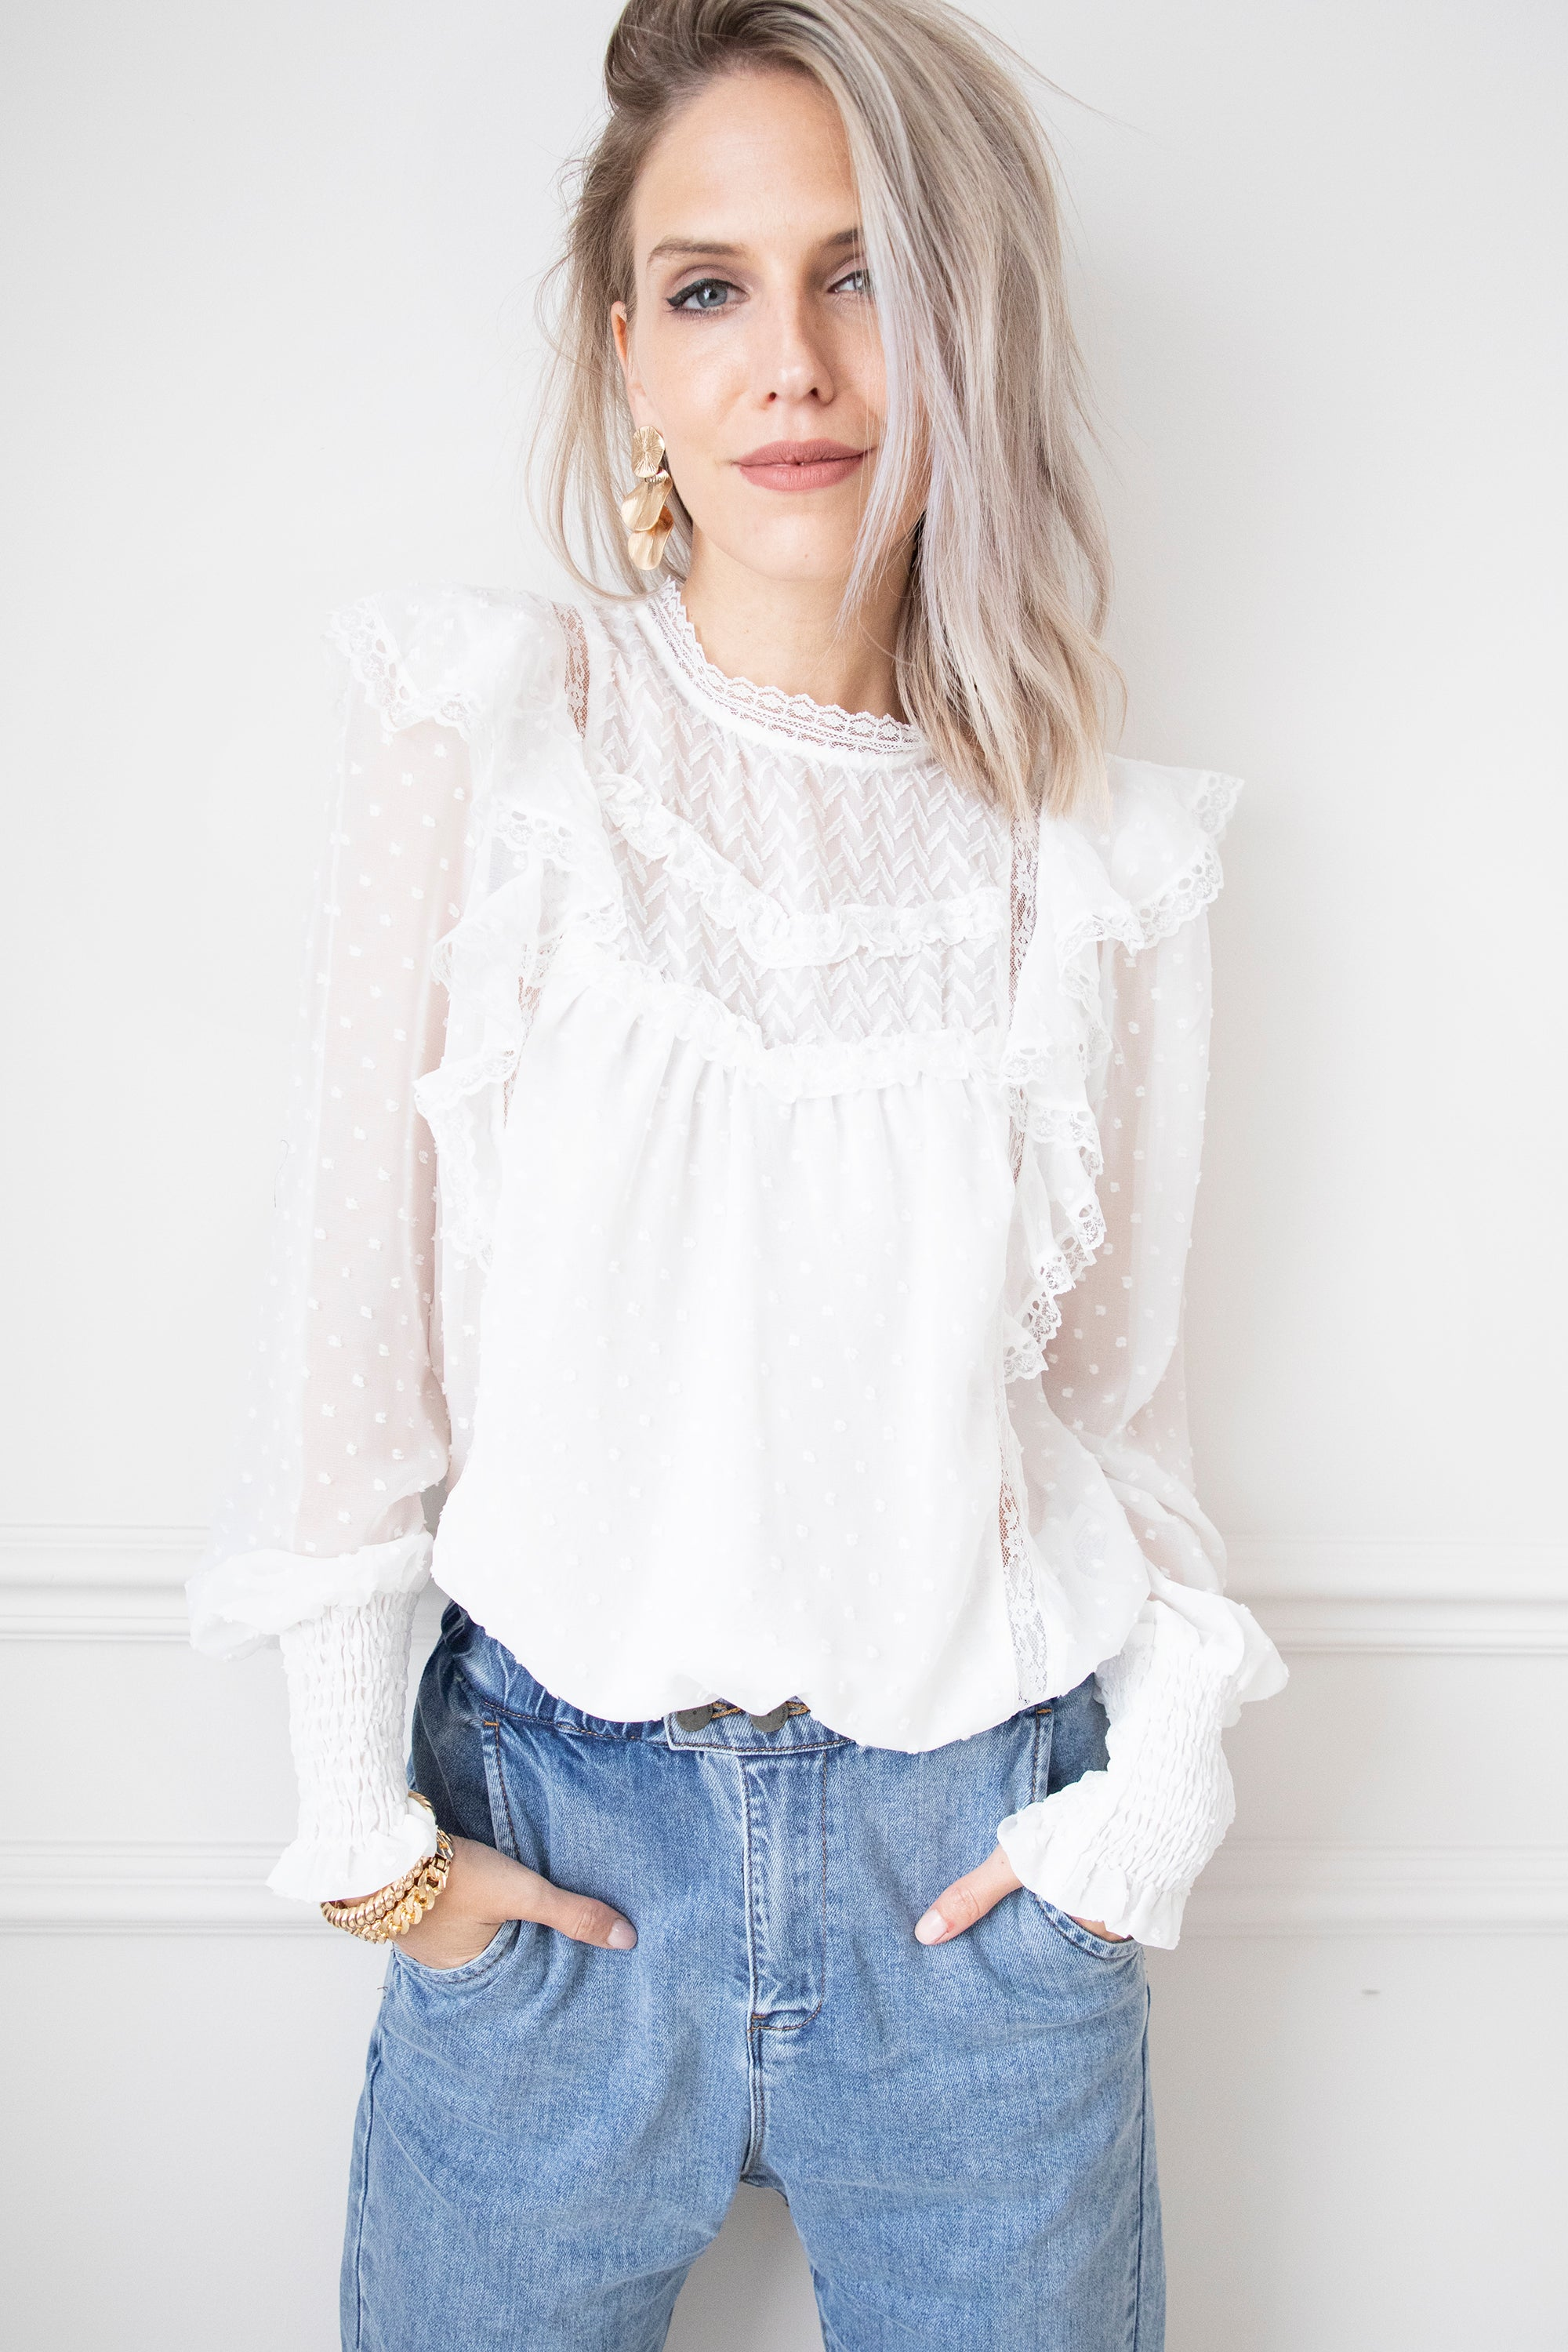 The Most Romantic White - Blouse